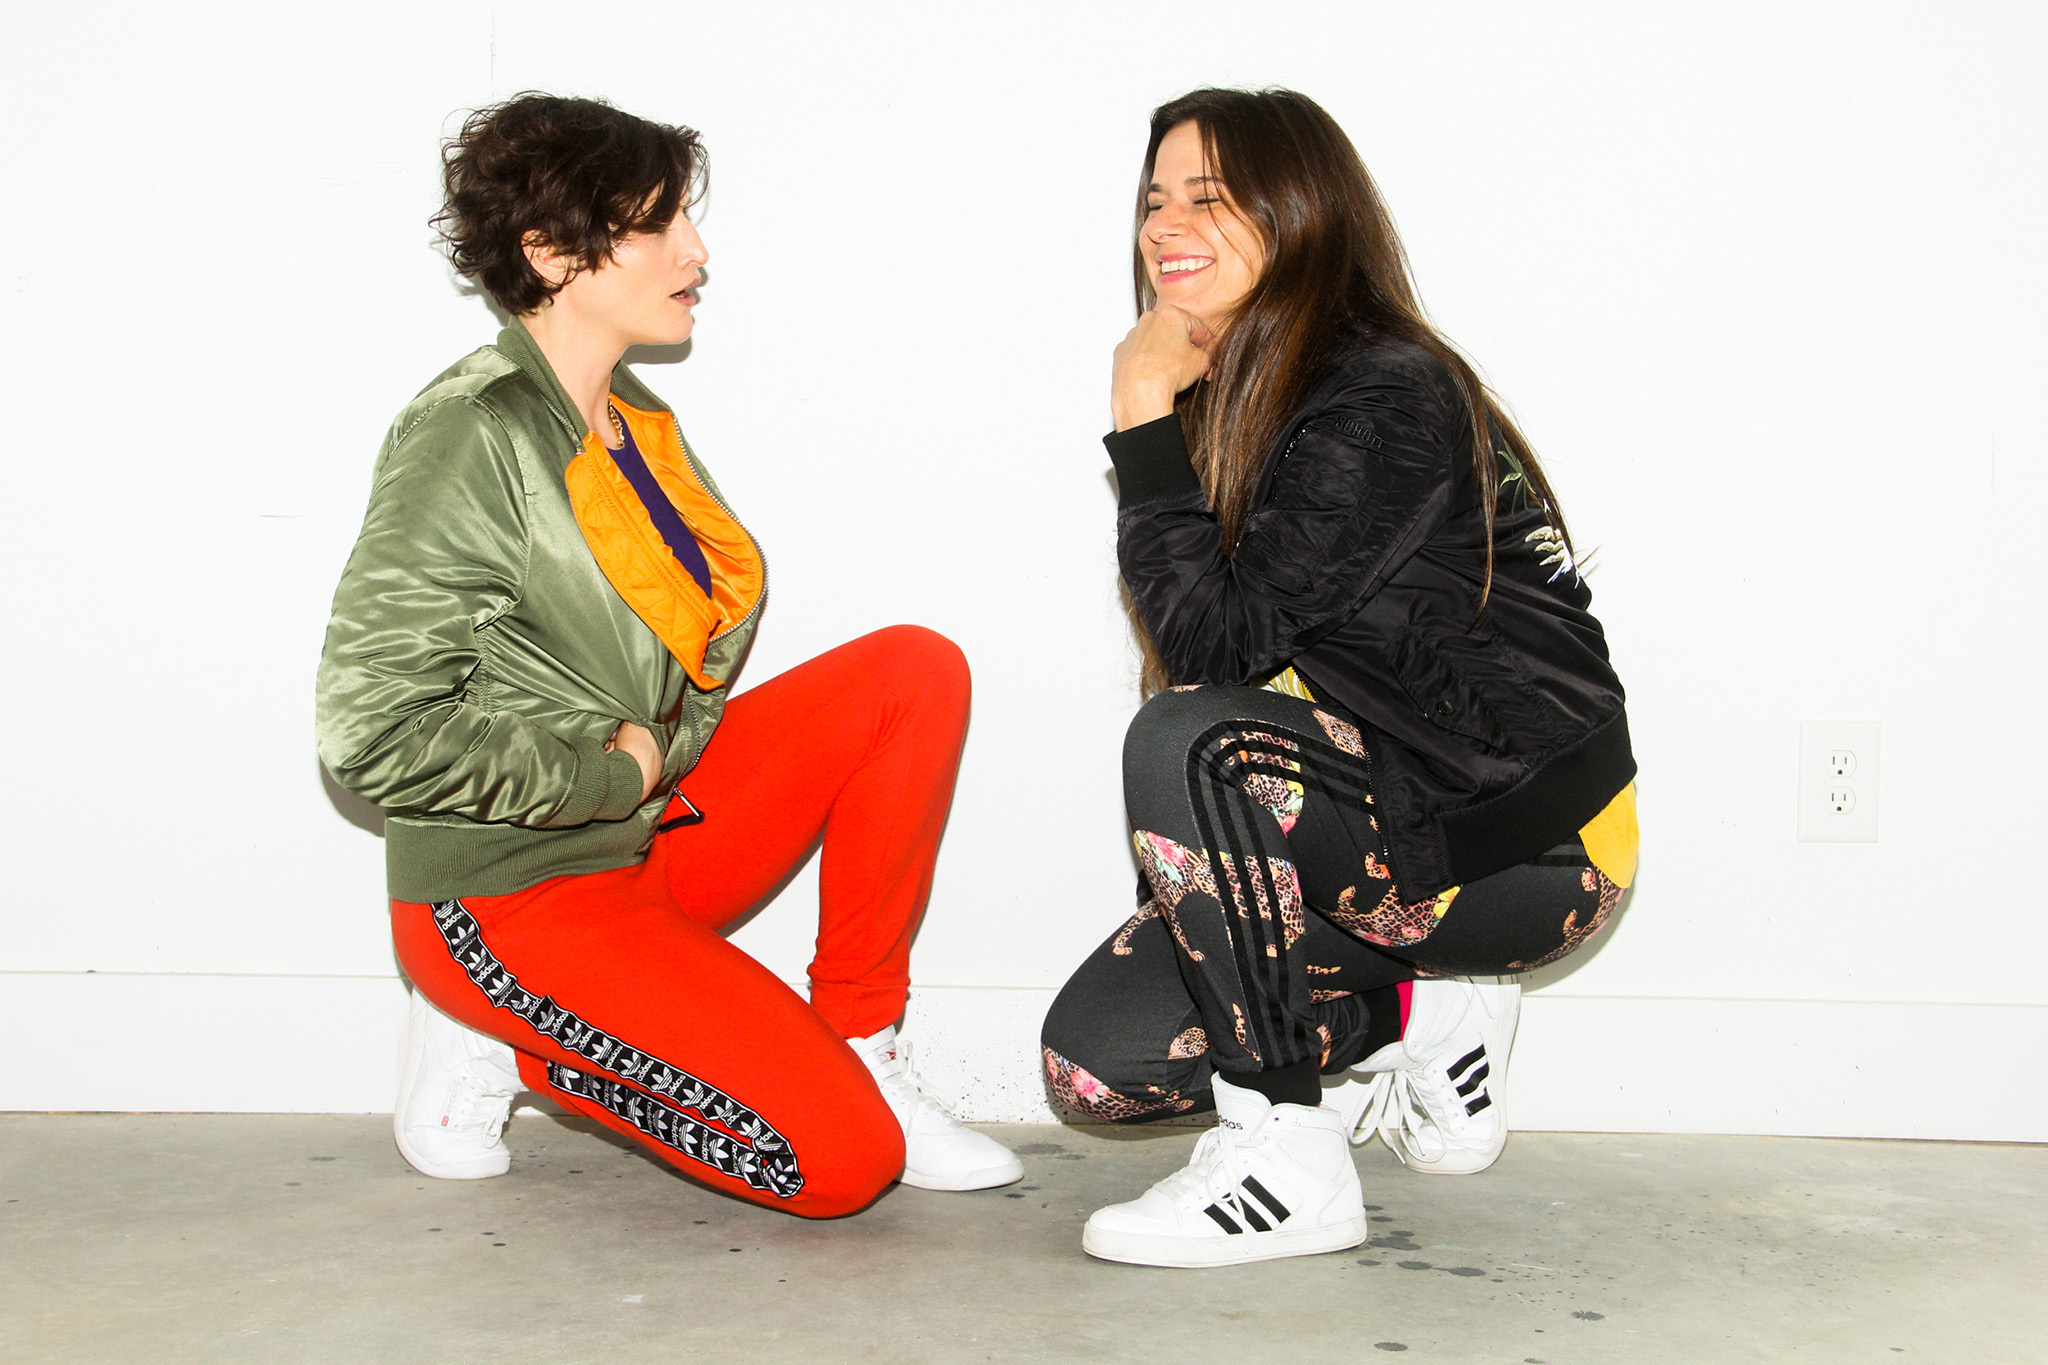 Bat Fangs' debut album is a riff-packed glam rock masterpiece